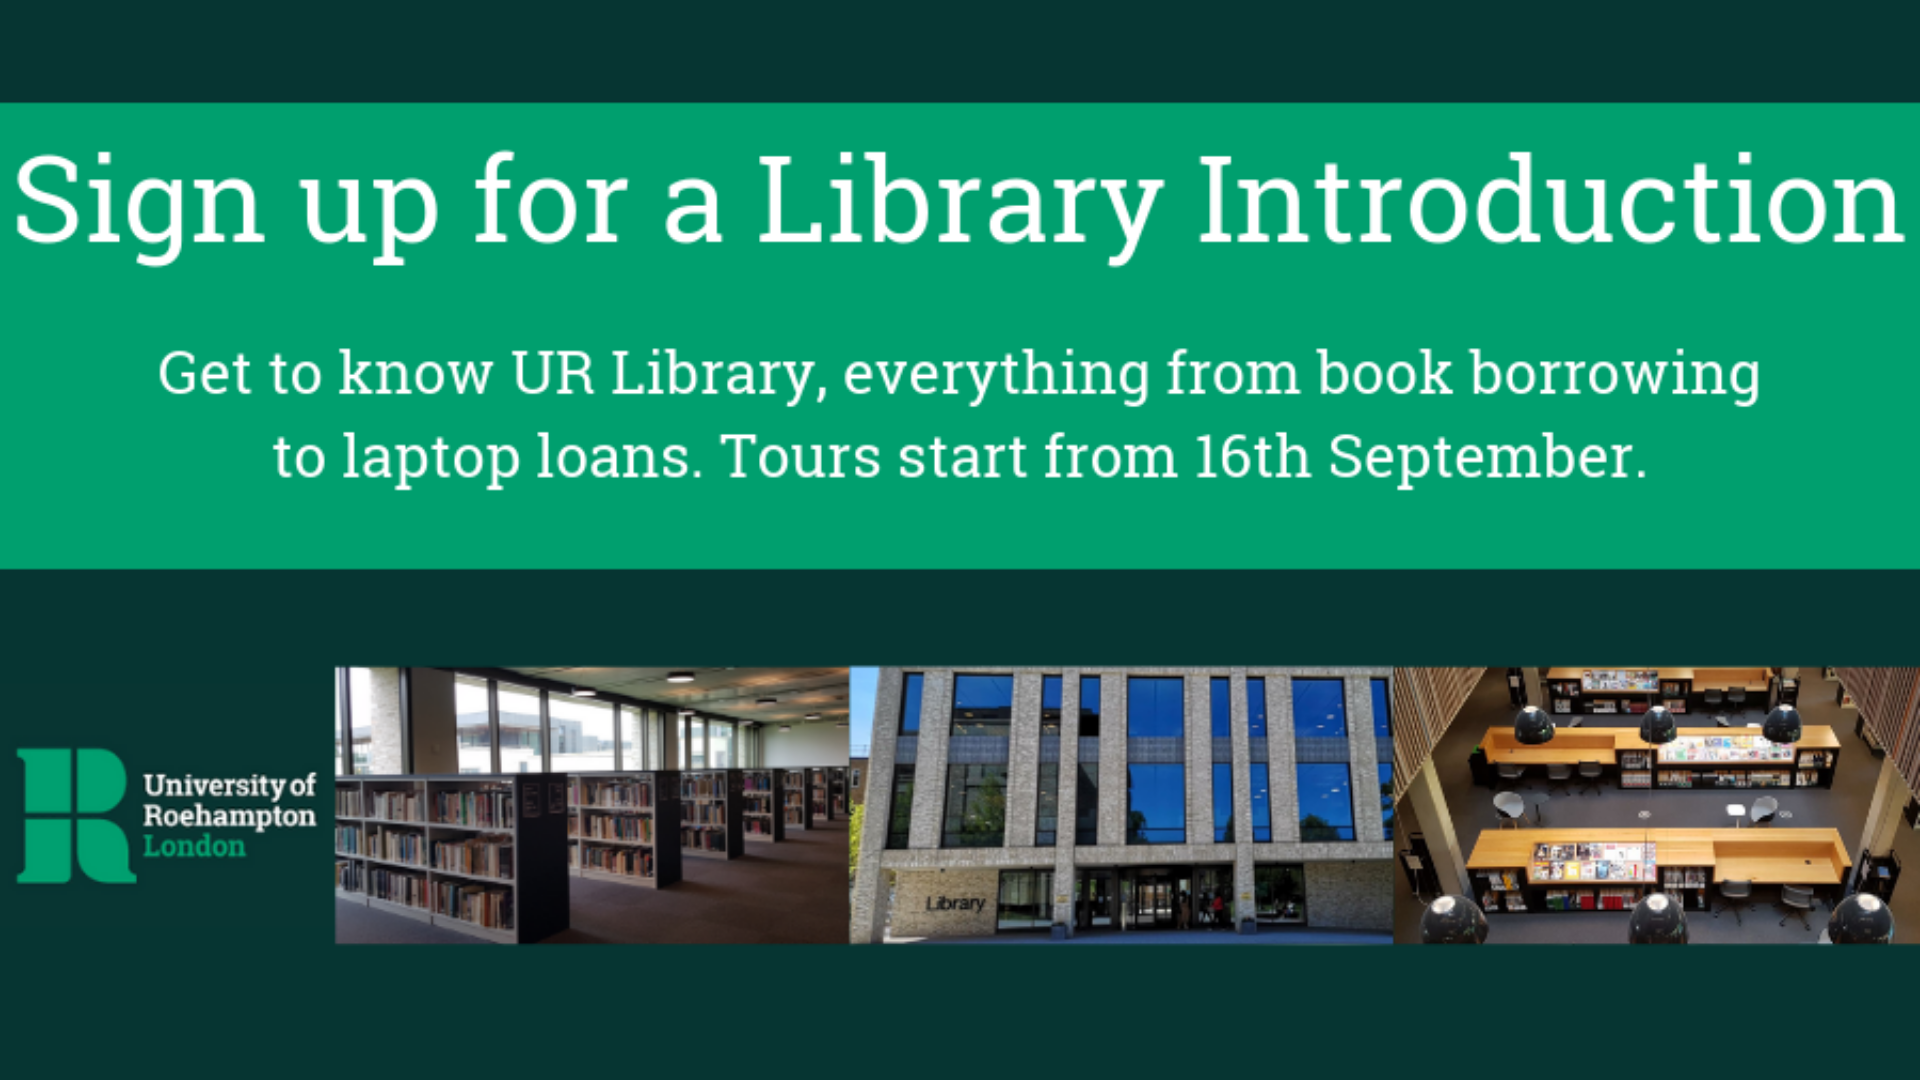 Sign up for a library induction on Eventbrite 16 Sept to 28 Oct